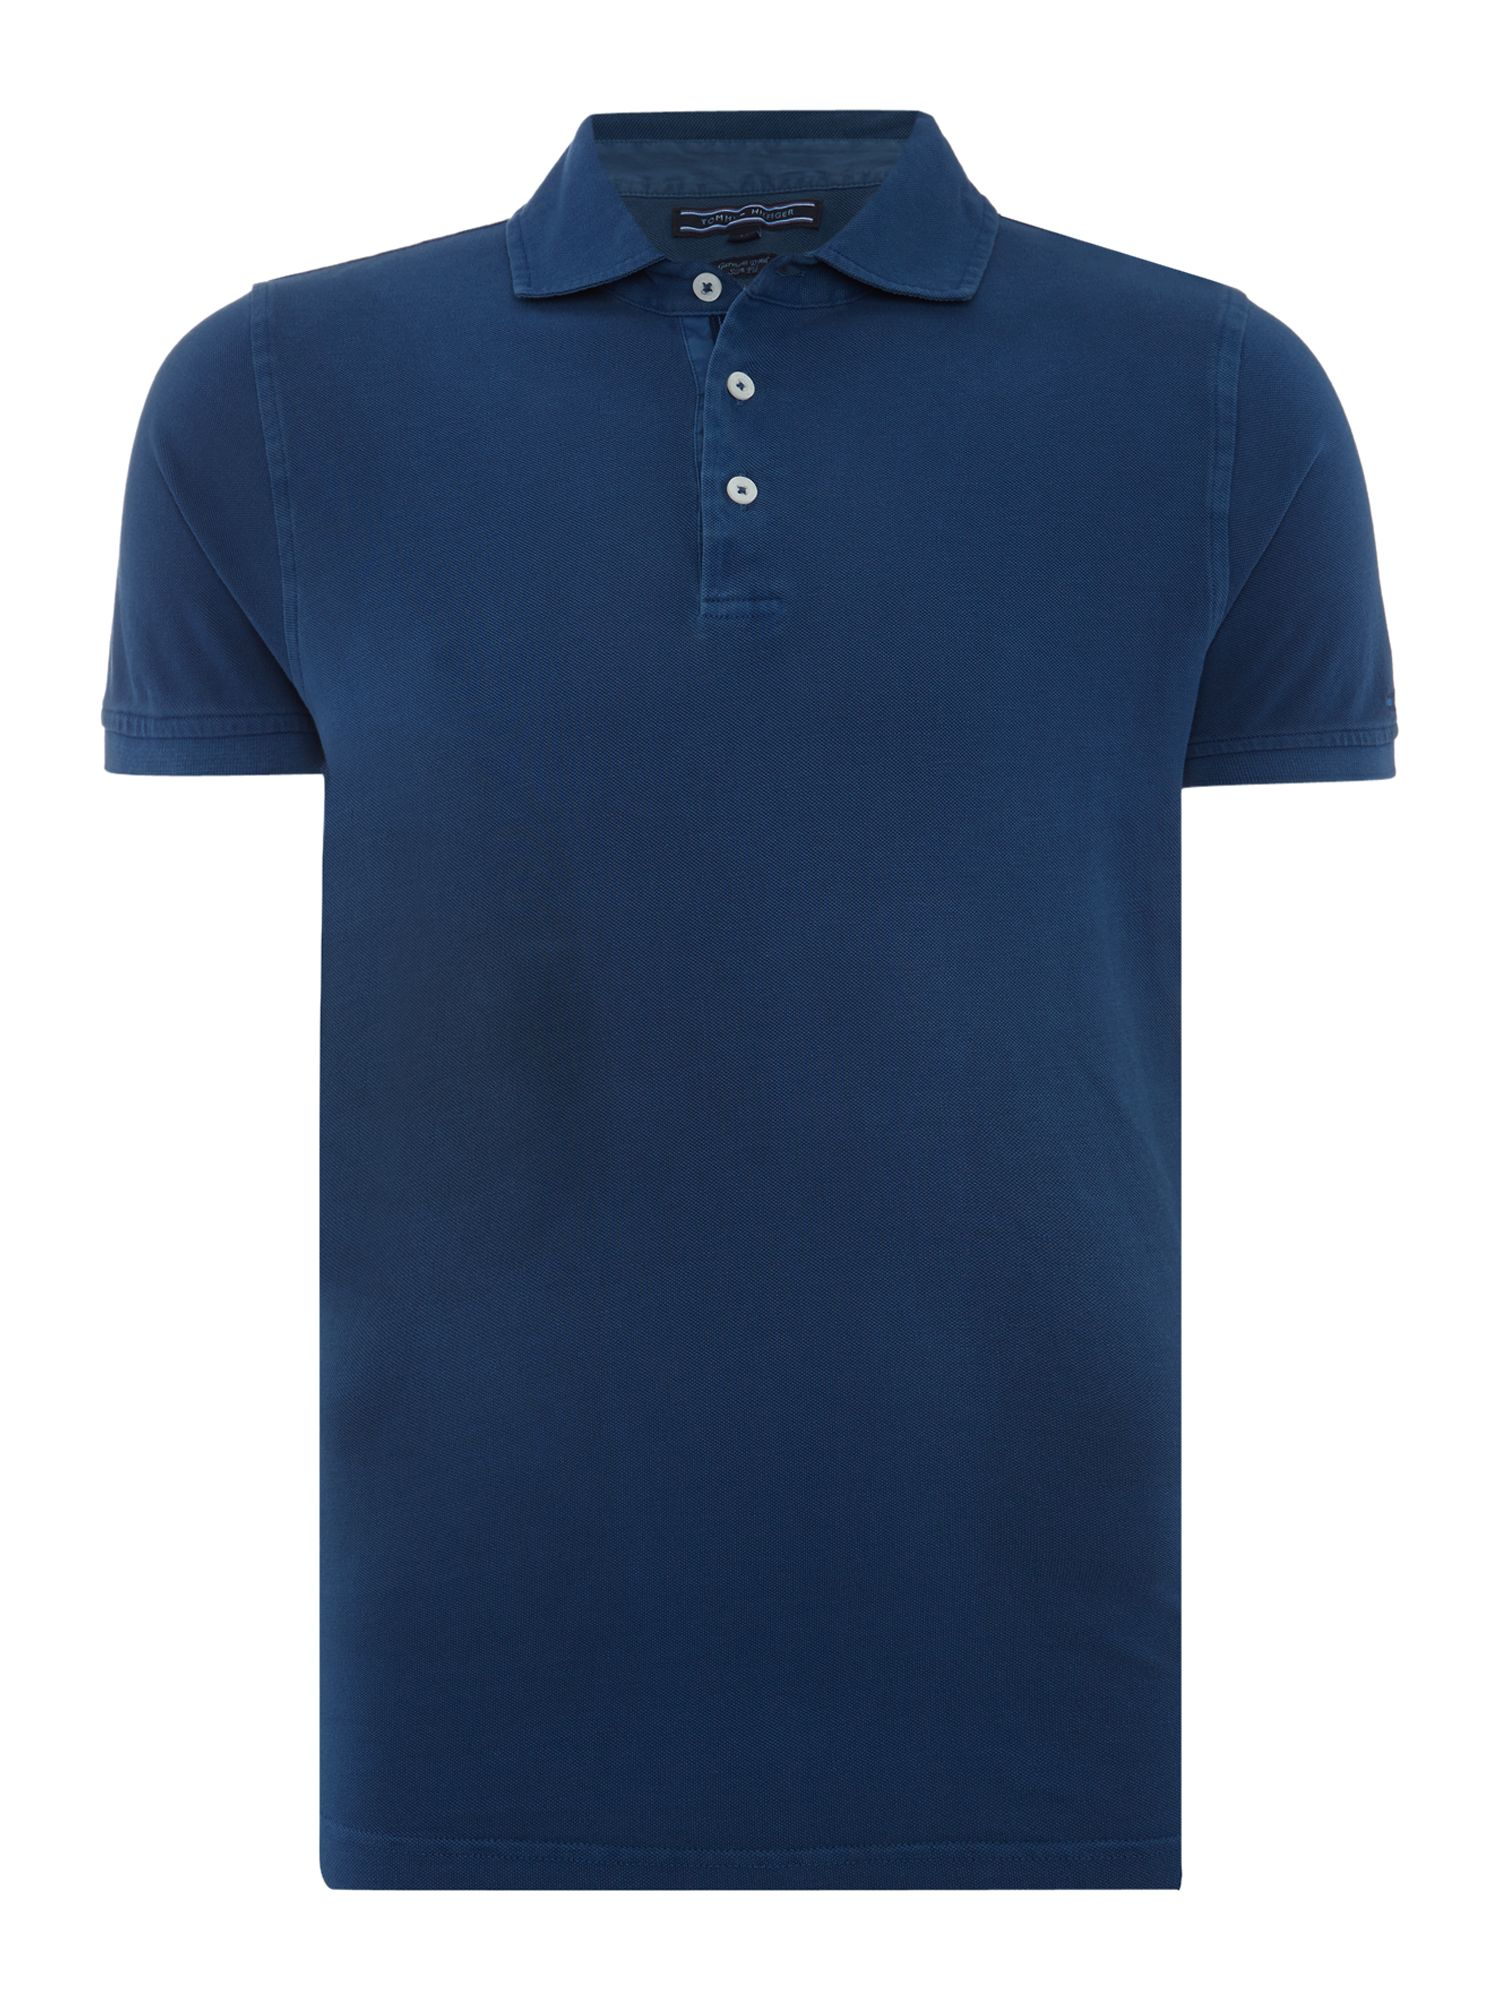 tommy hilfiger garment dyed polo top in blue for men lyst. Black Bedroom Furniture Sets. Home Design Ideas